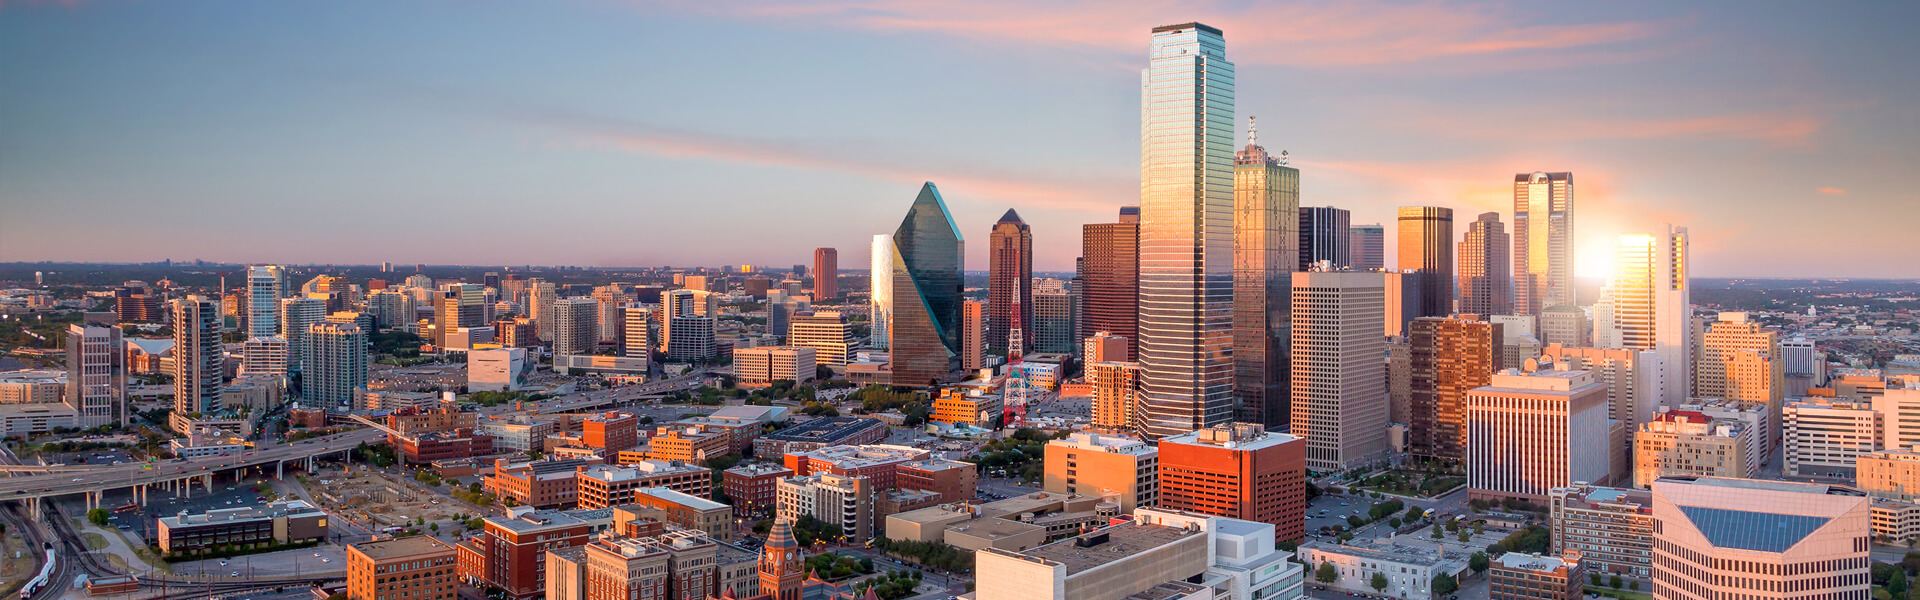 Find Local Texas Car Insurance Quotes and Coverage